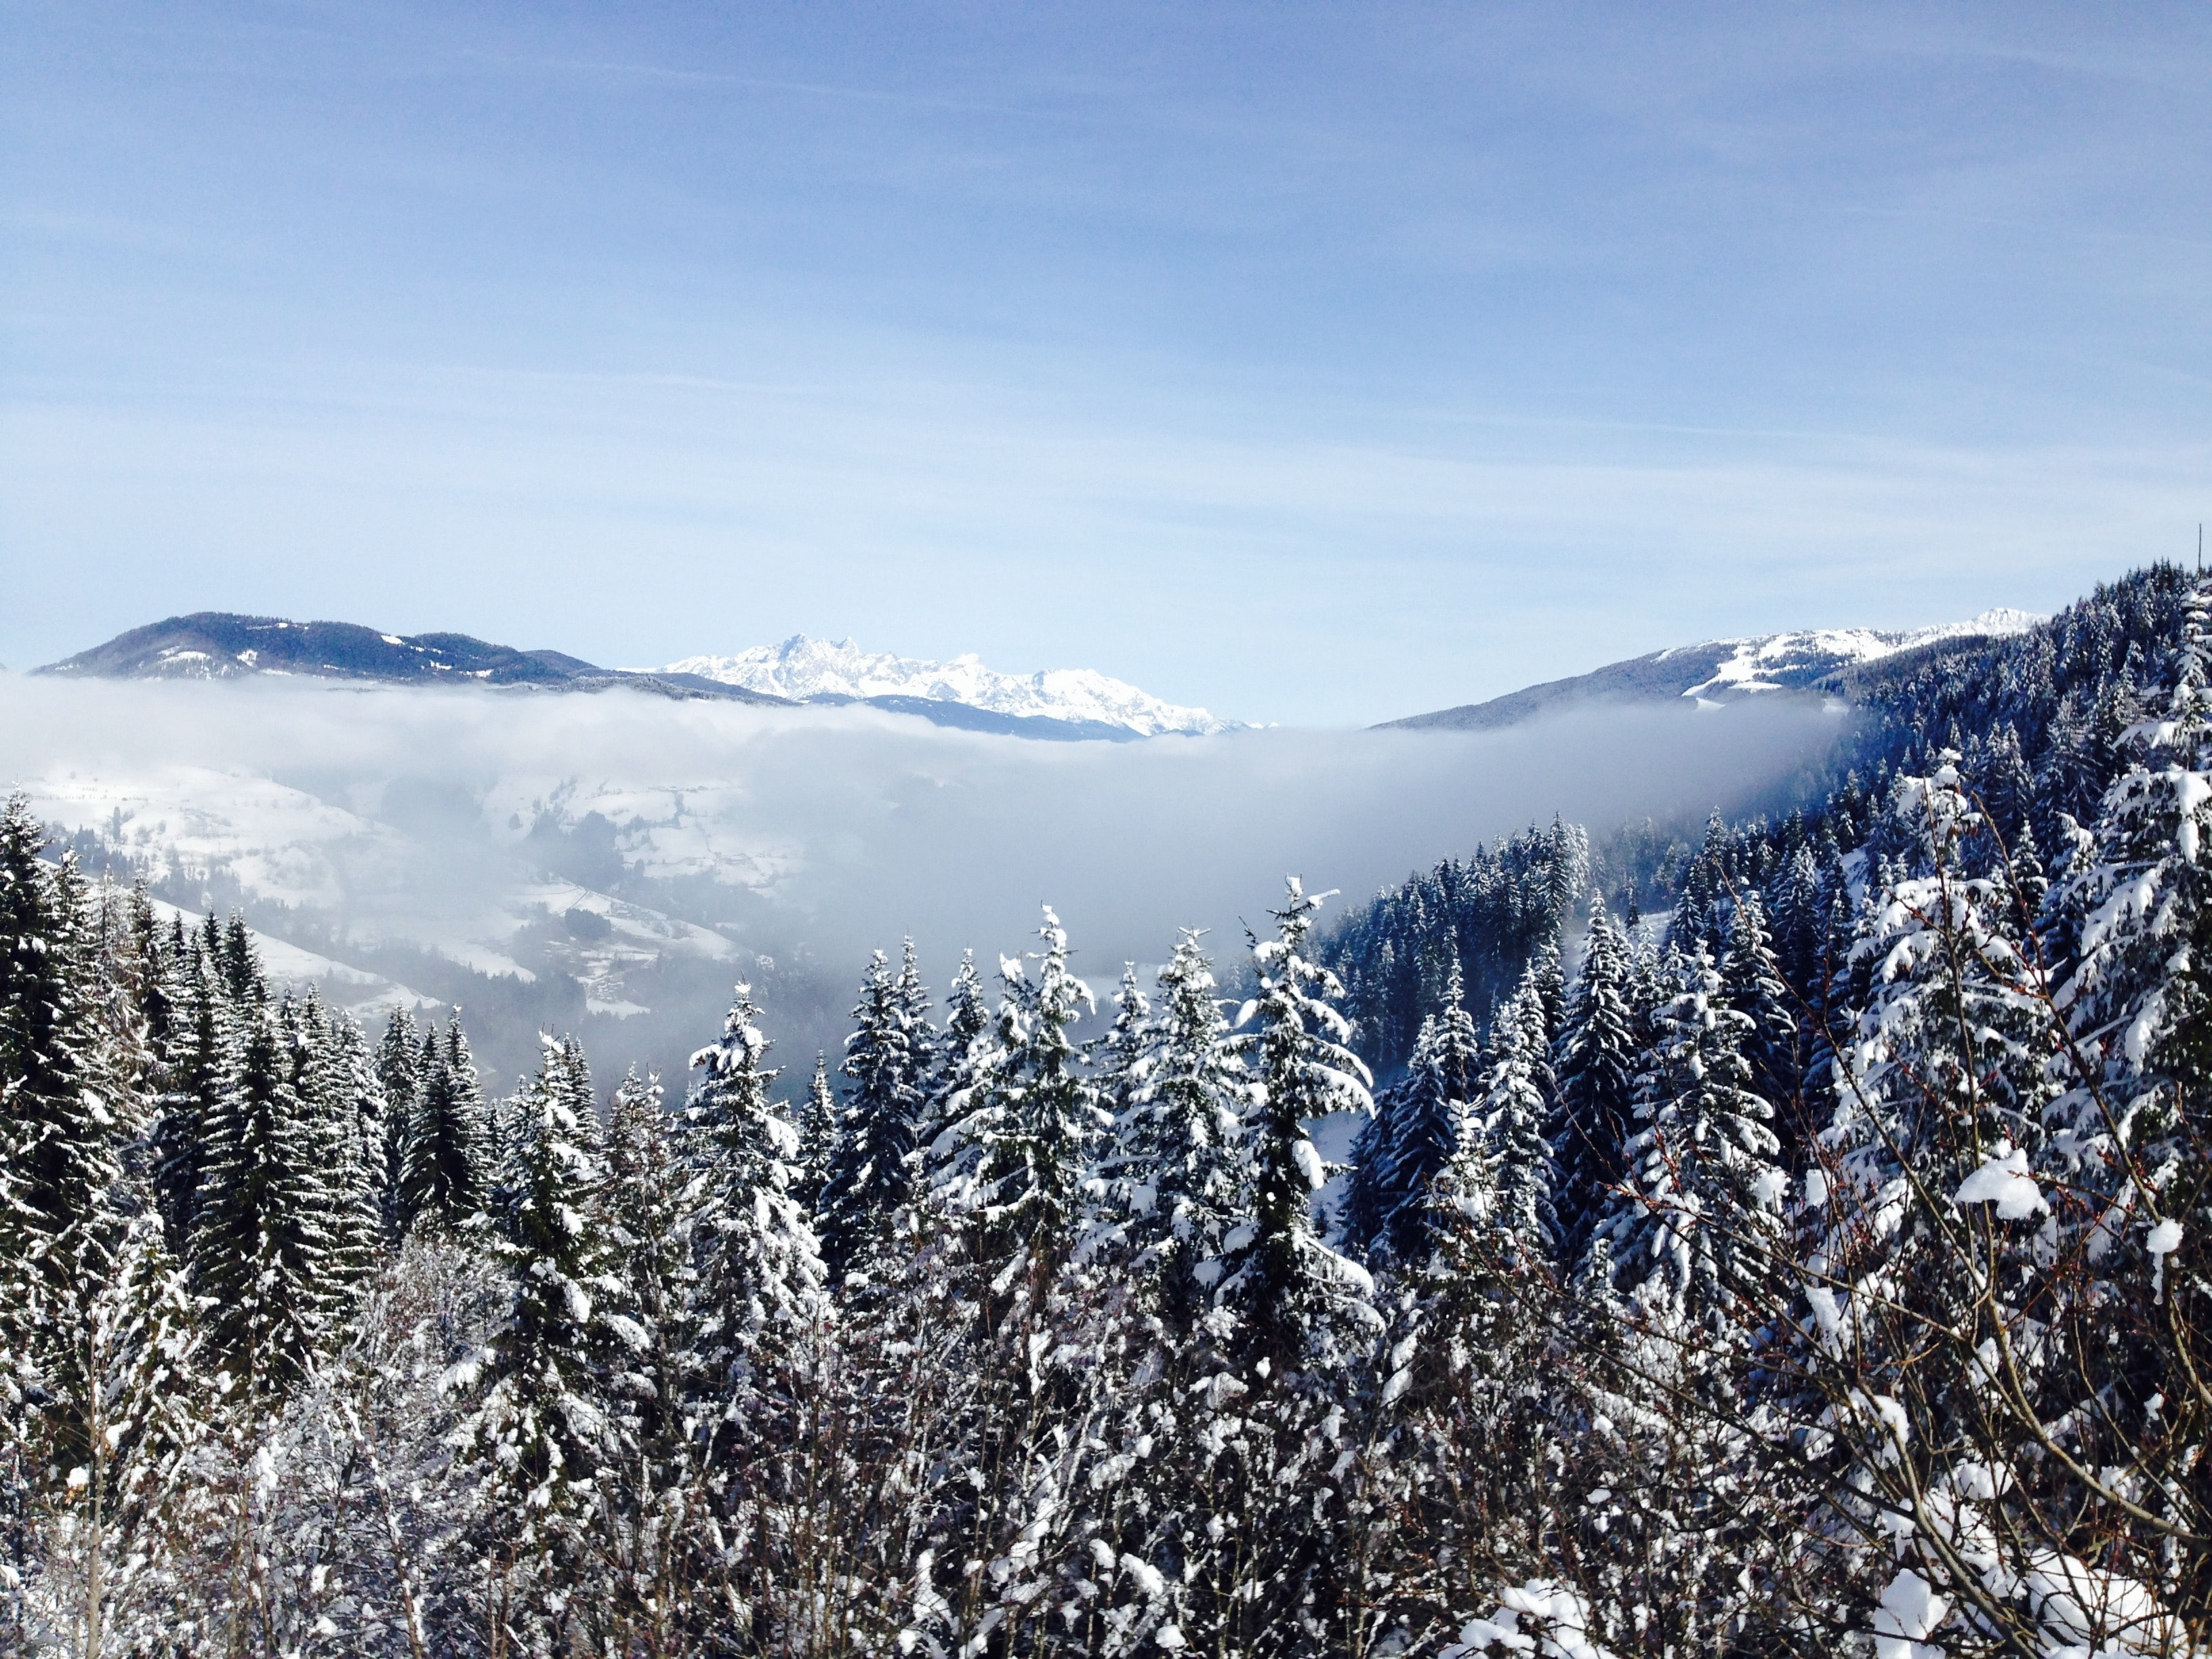 Overlooking a forest of snow covered trees and mountains in Austria.